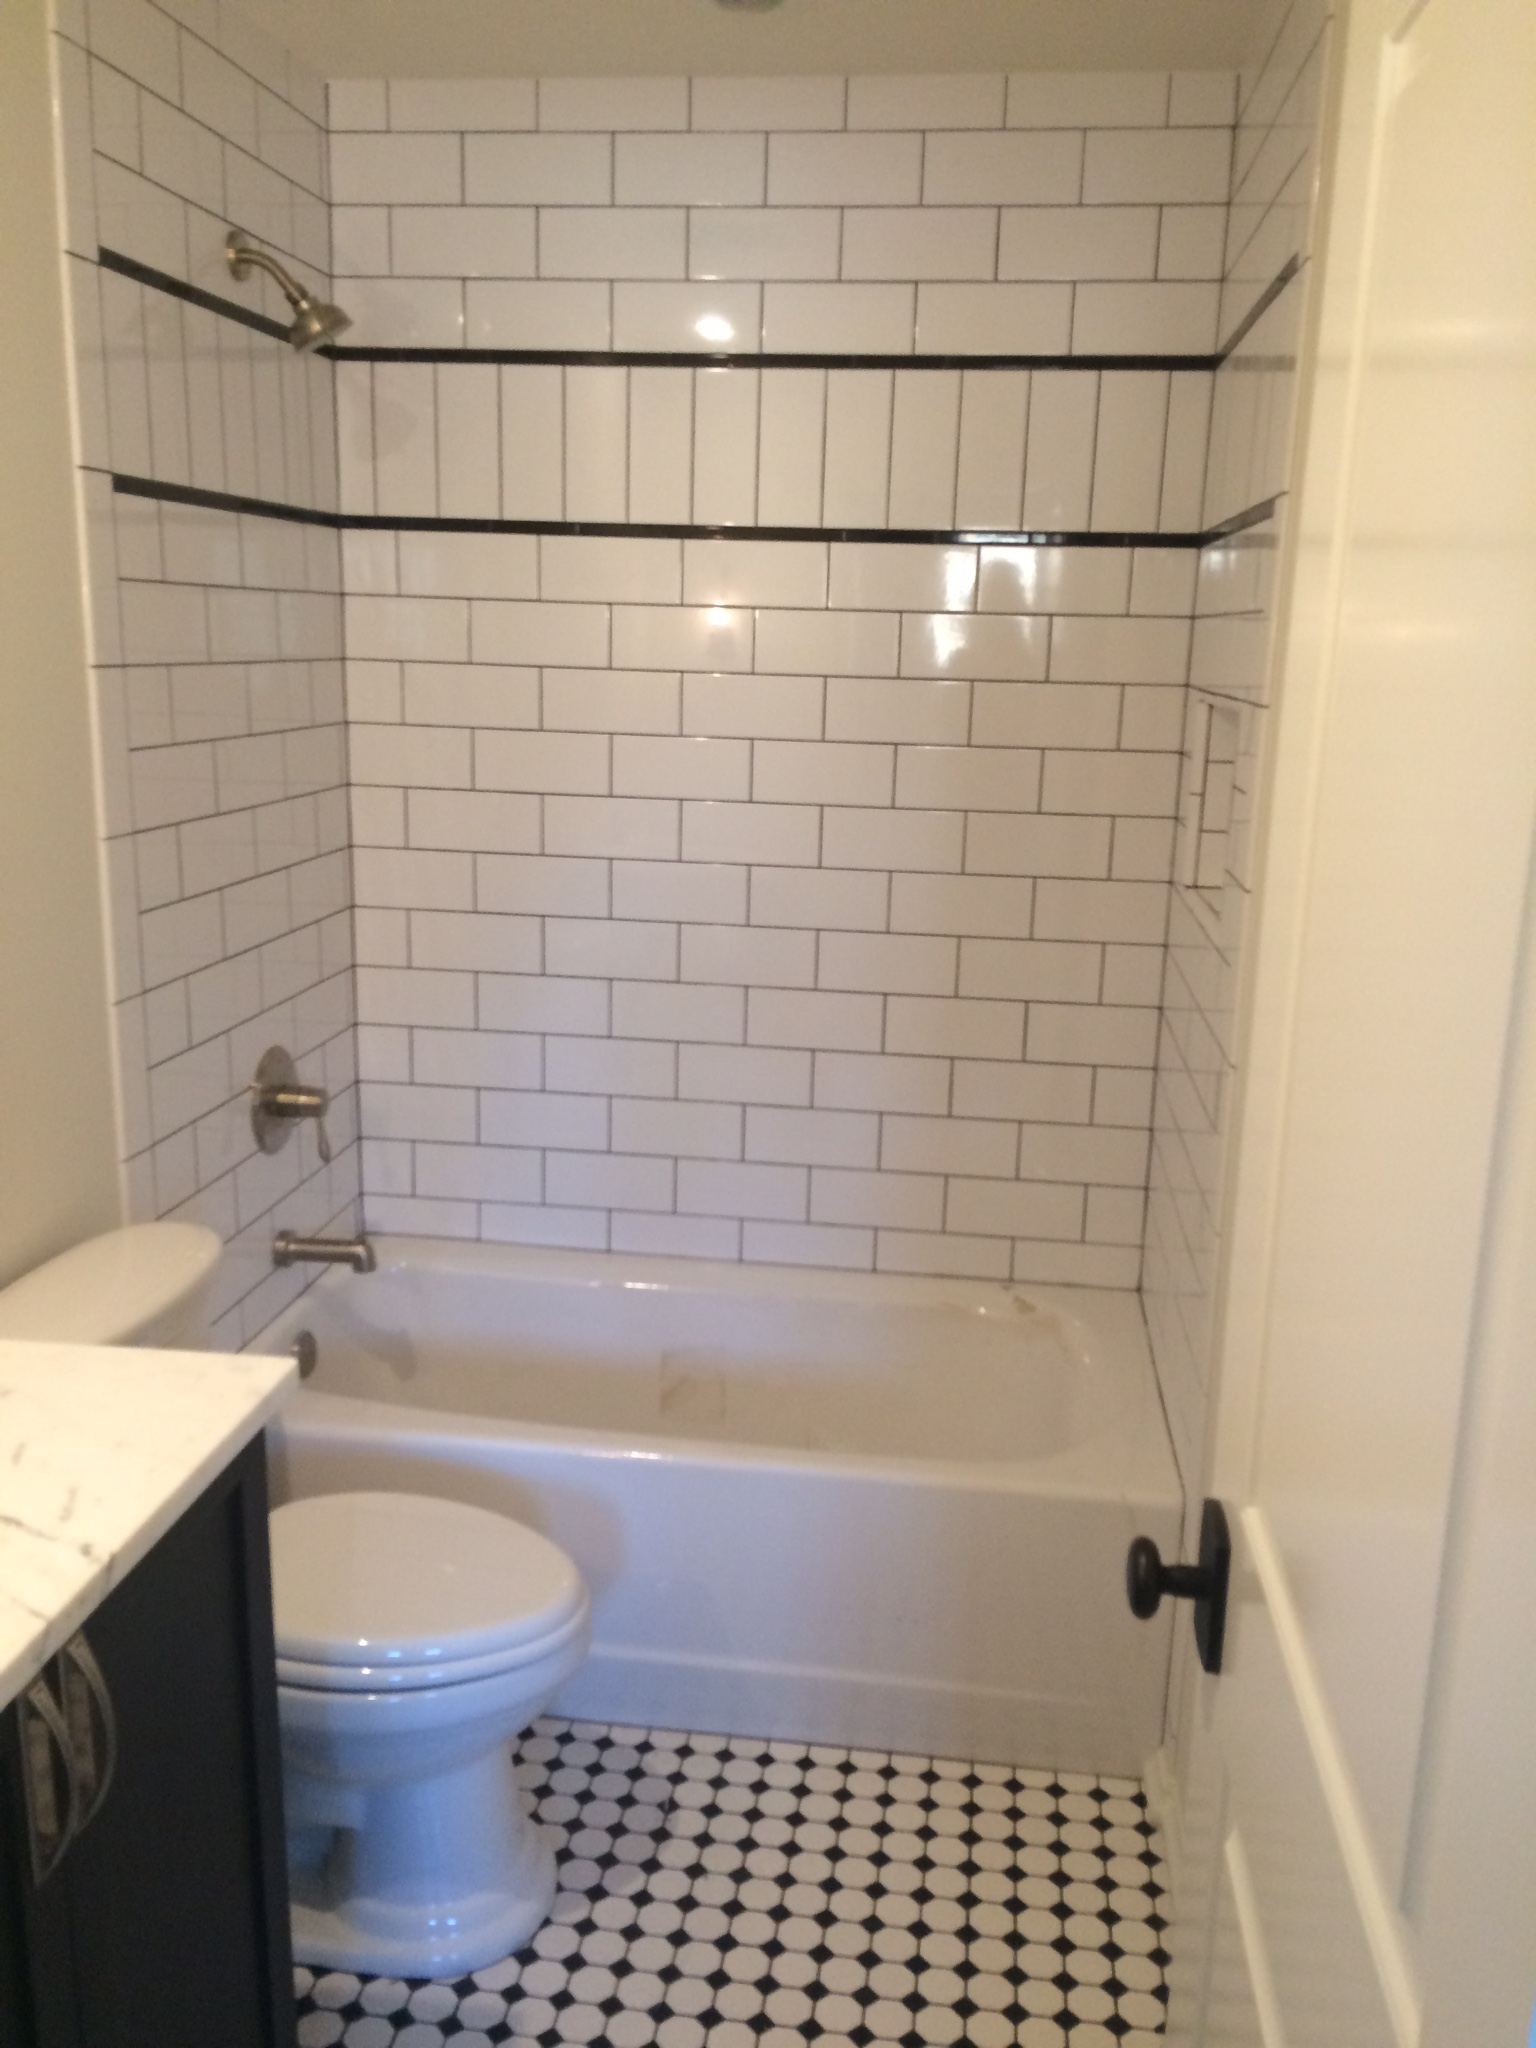 Mosaic tile and shower